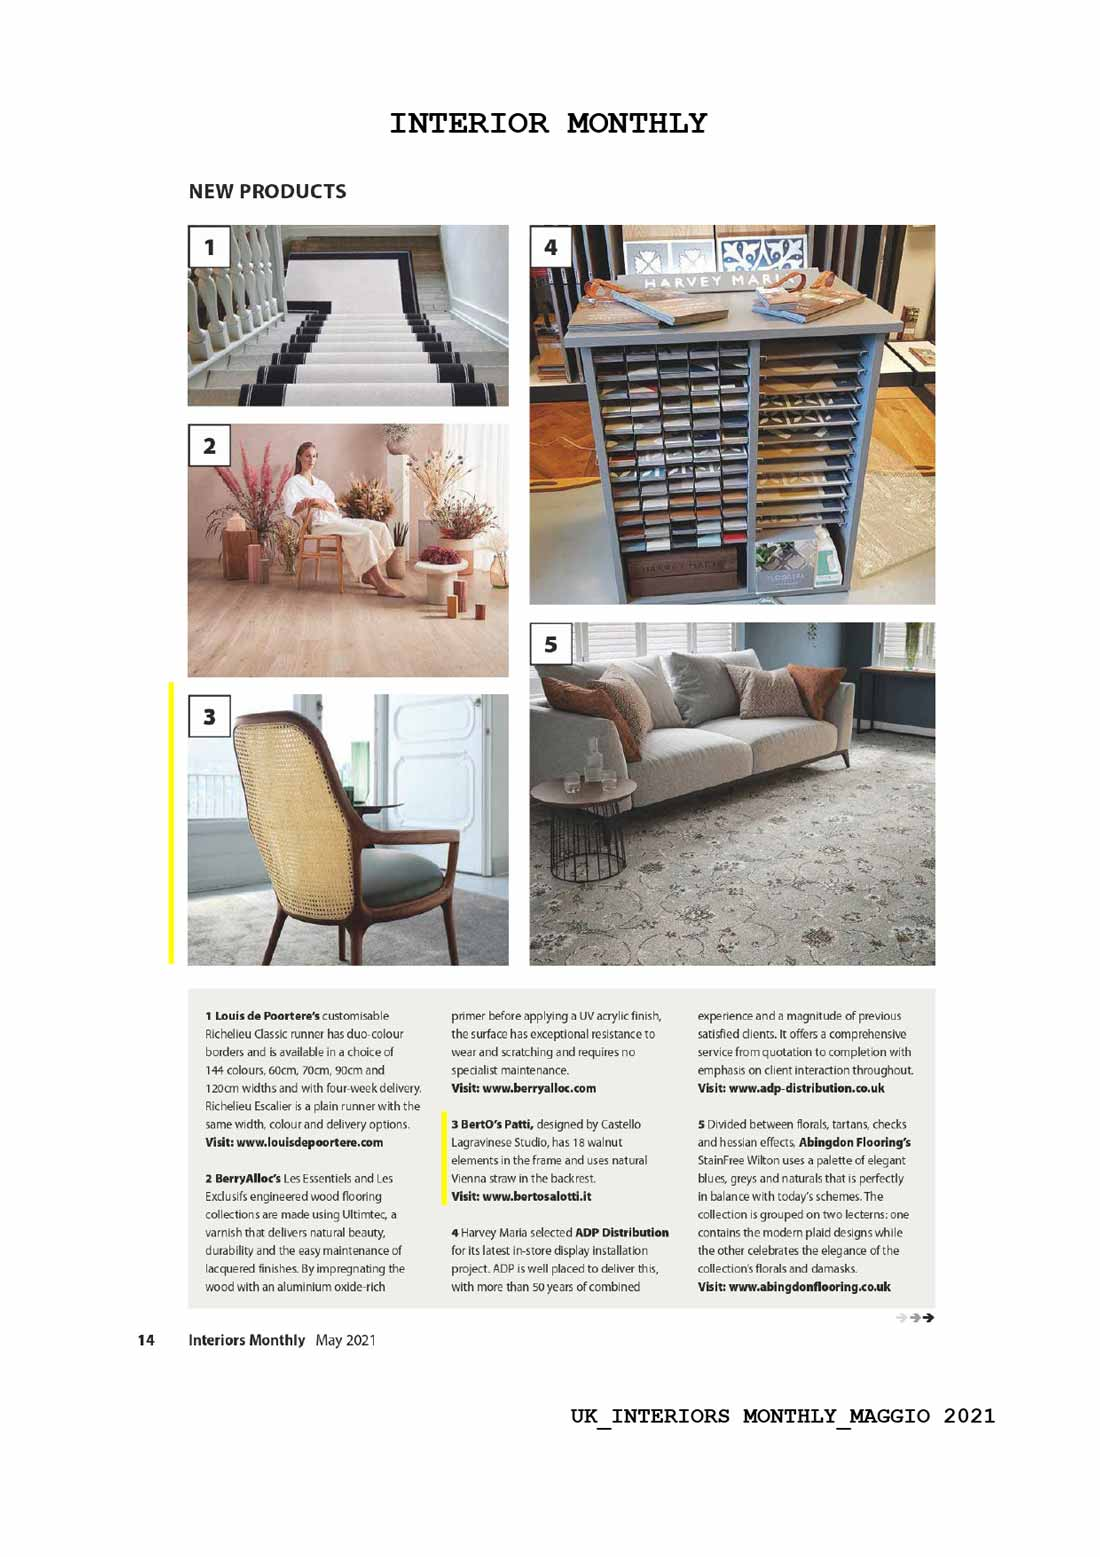 Fauteuil Patti - Gallery Interiors Monthly Mai 2021